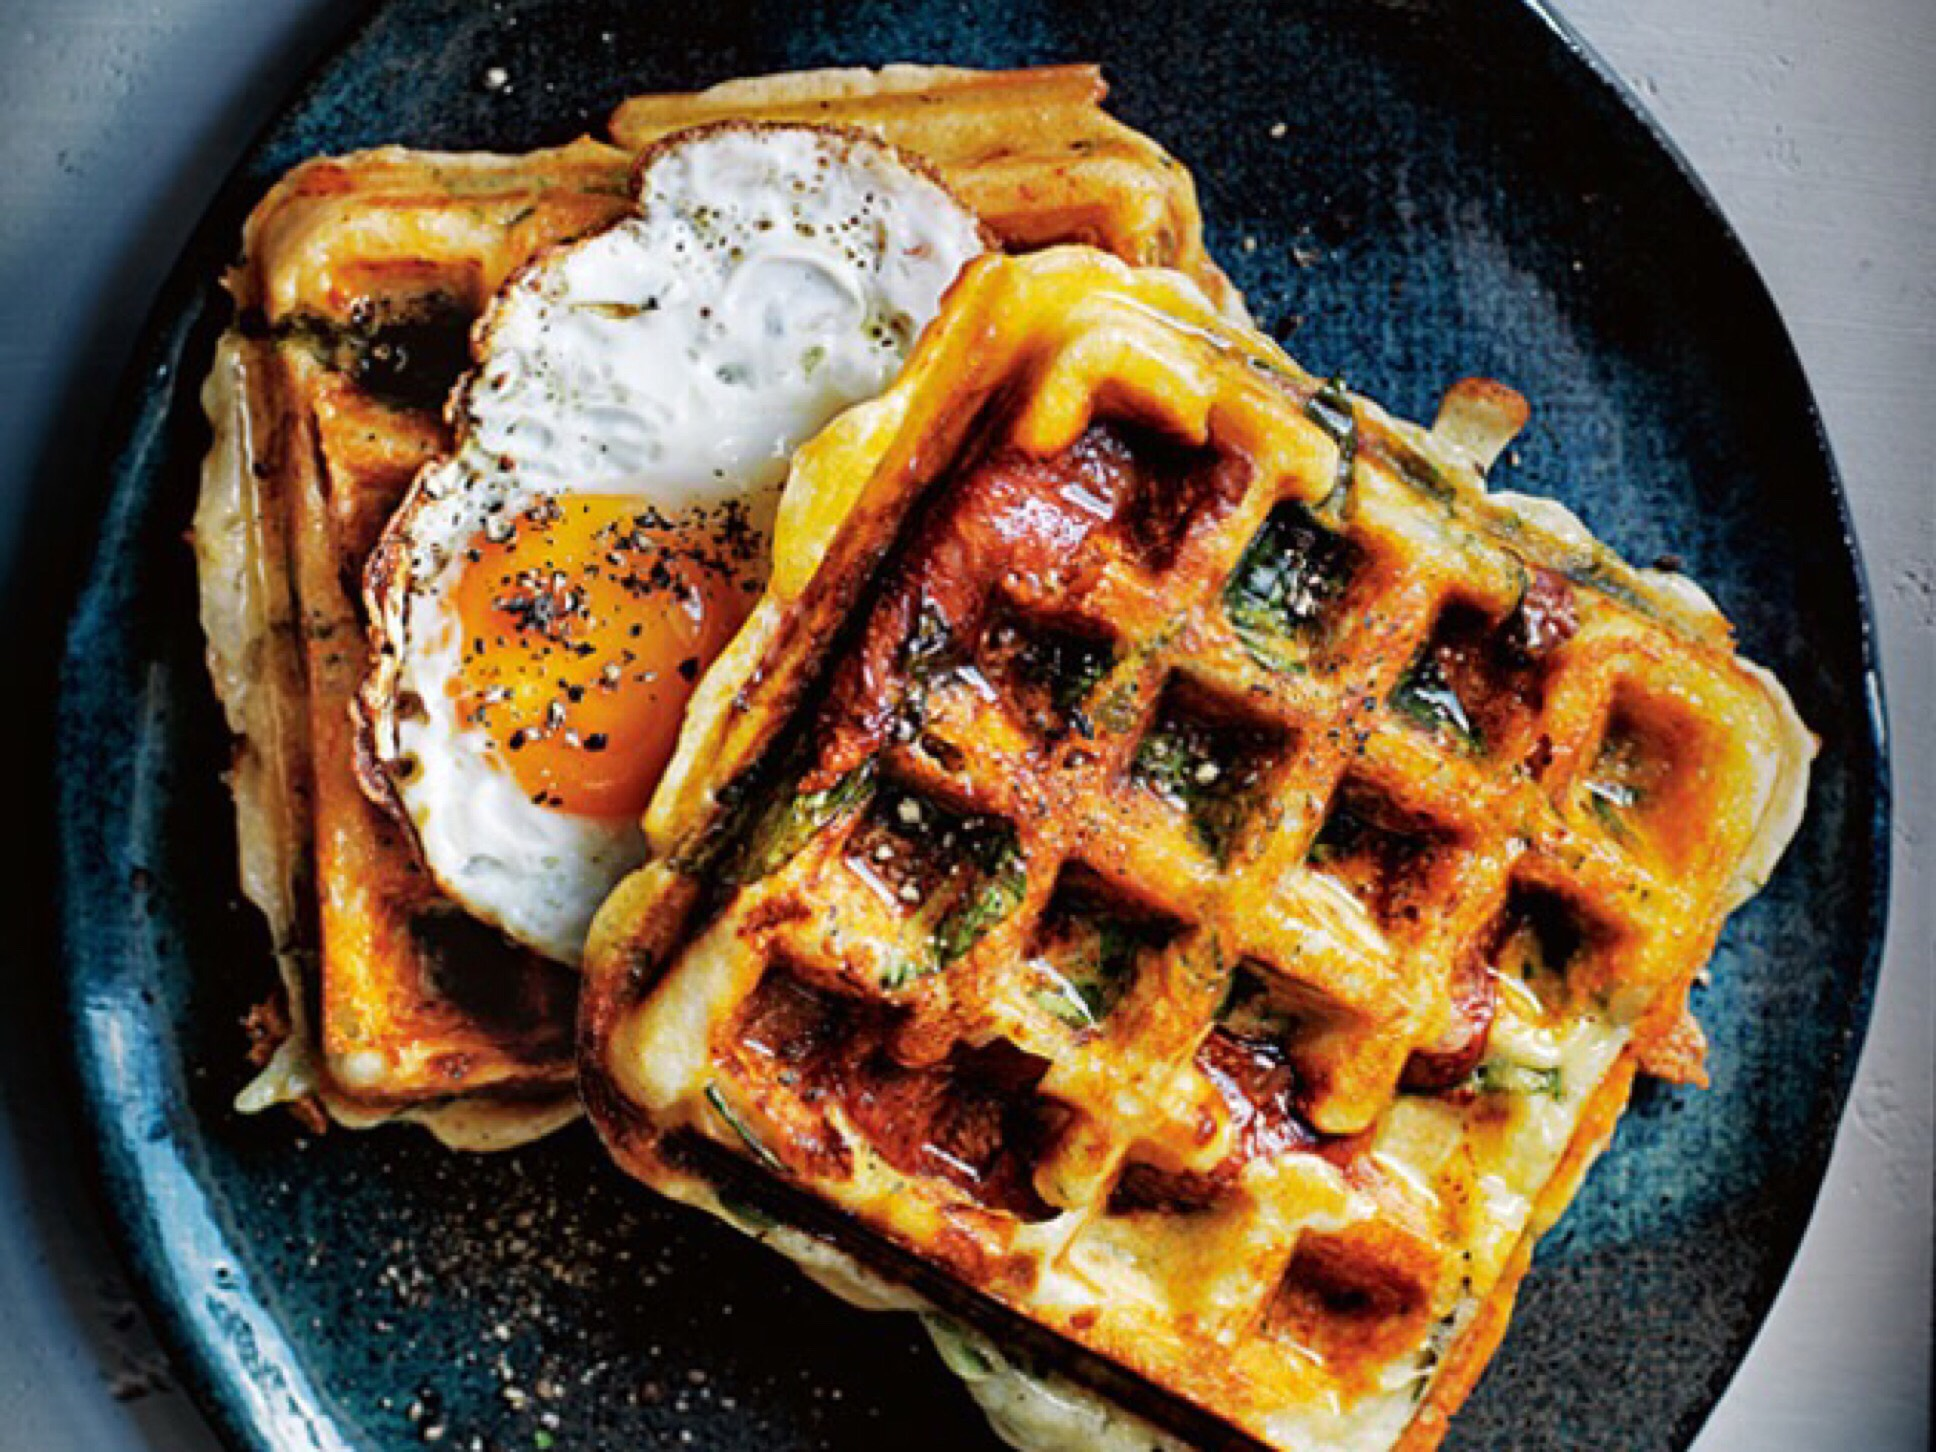 Egg waffles - breakfast in bed